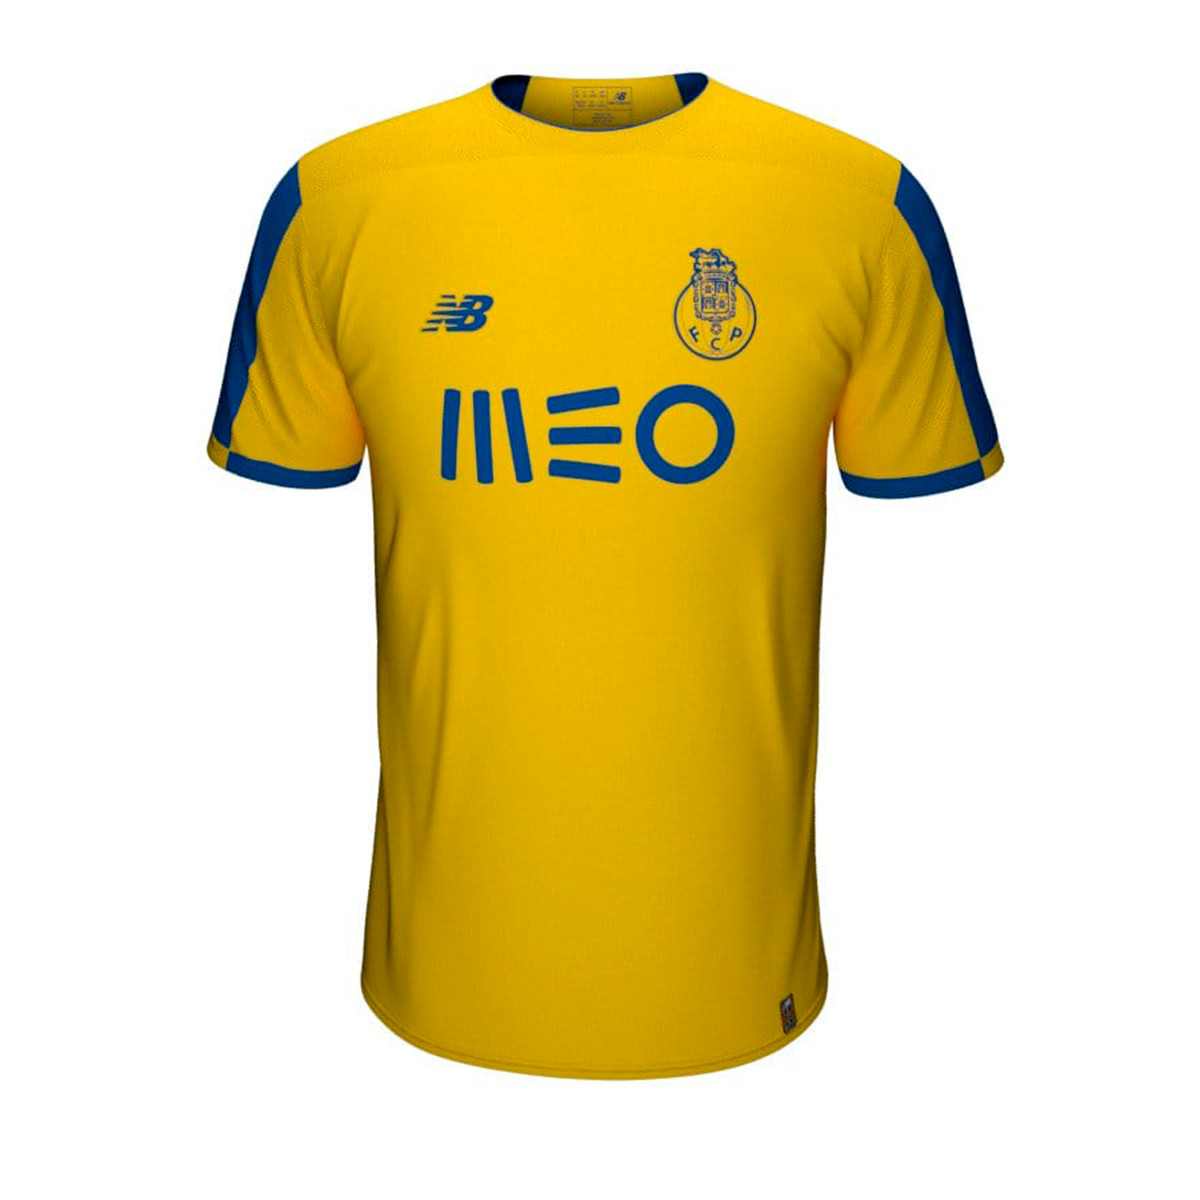 check out eacb6 331a2 Camiseta FC Porto Segunda Equipación SS 2019-2020 Yellow-Blue